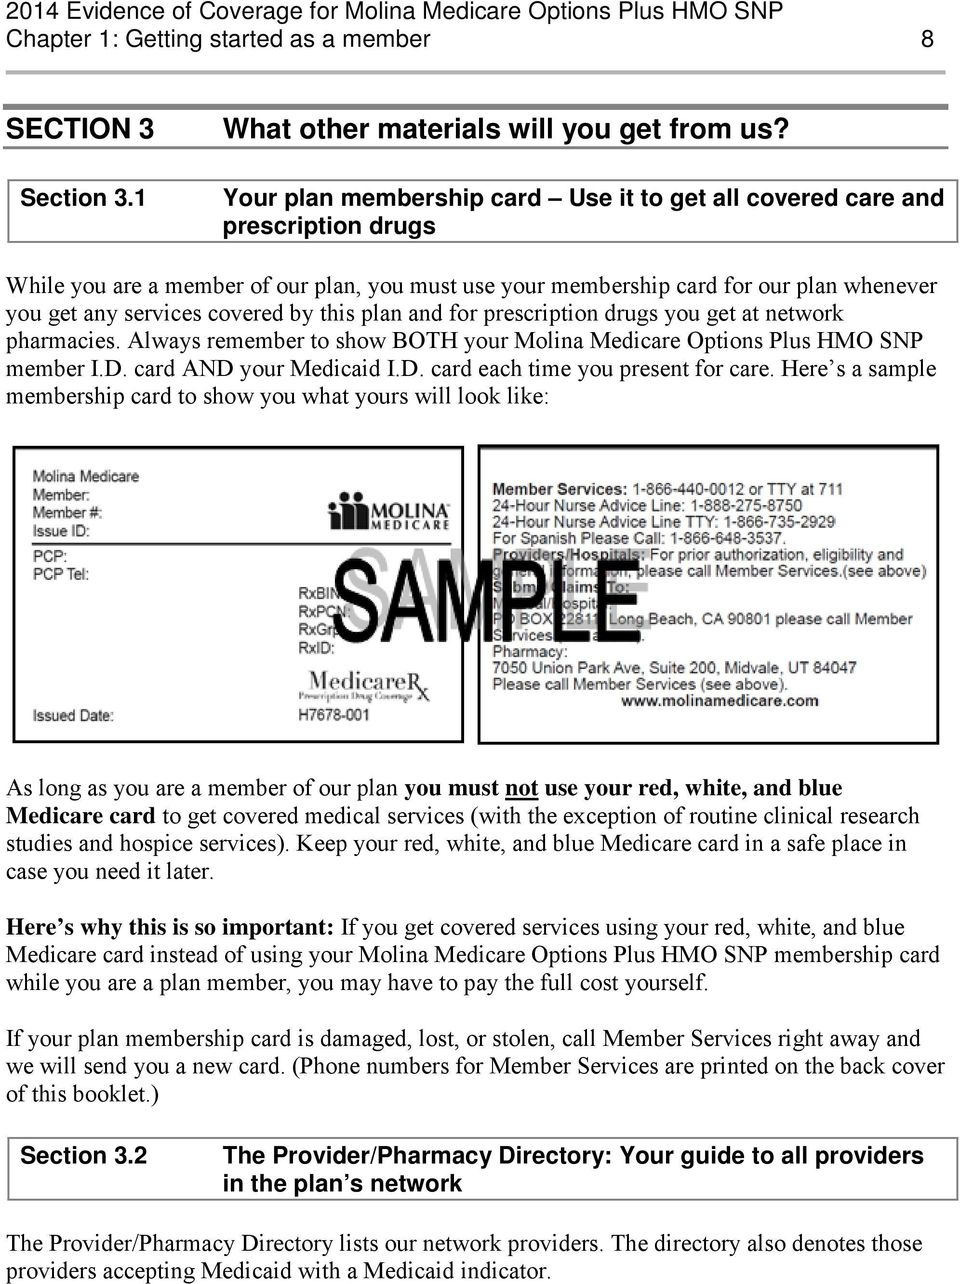 covered by this plan and for prescription drugs you get at network pharmacies. Always remember to show BOTH your Molina Medicare Options Plus HMO SNP member I.D. card AND your Medicaid I.D. card each time you present for care.